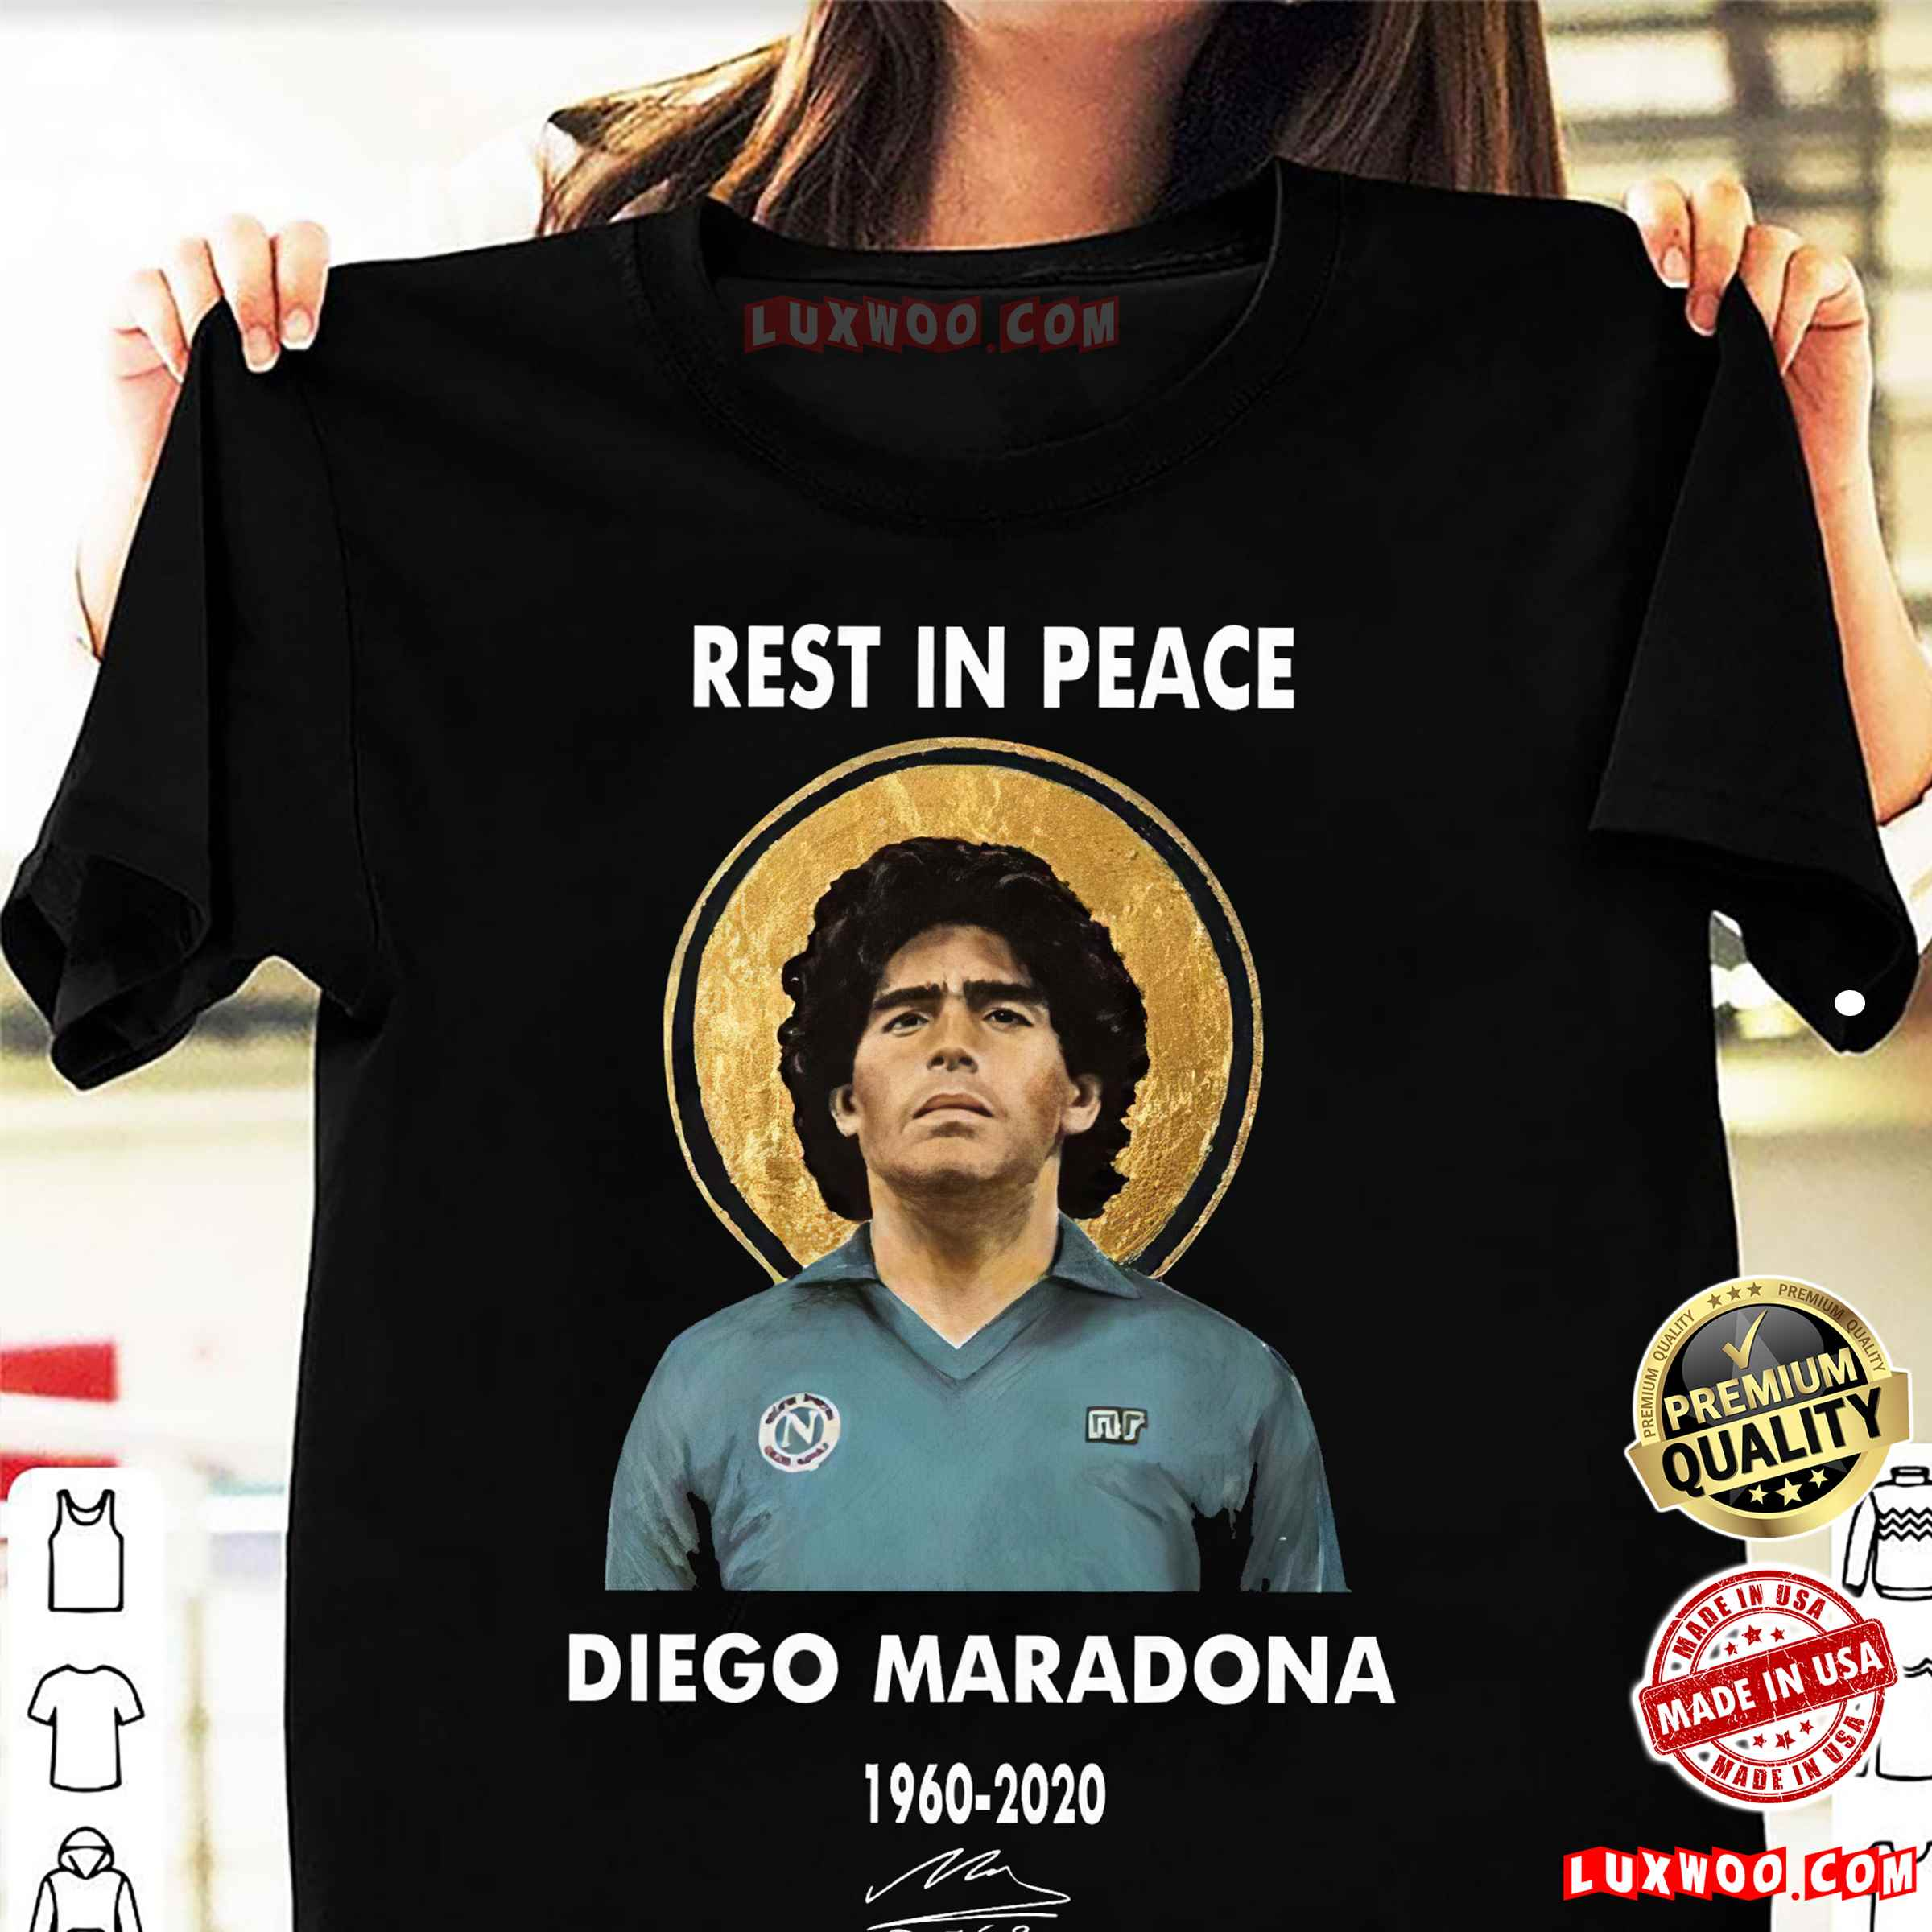 Diego Maradona Napoli T-shirt Rest In Peace 1960-2020 Soccer Legend Size S-5xl